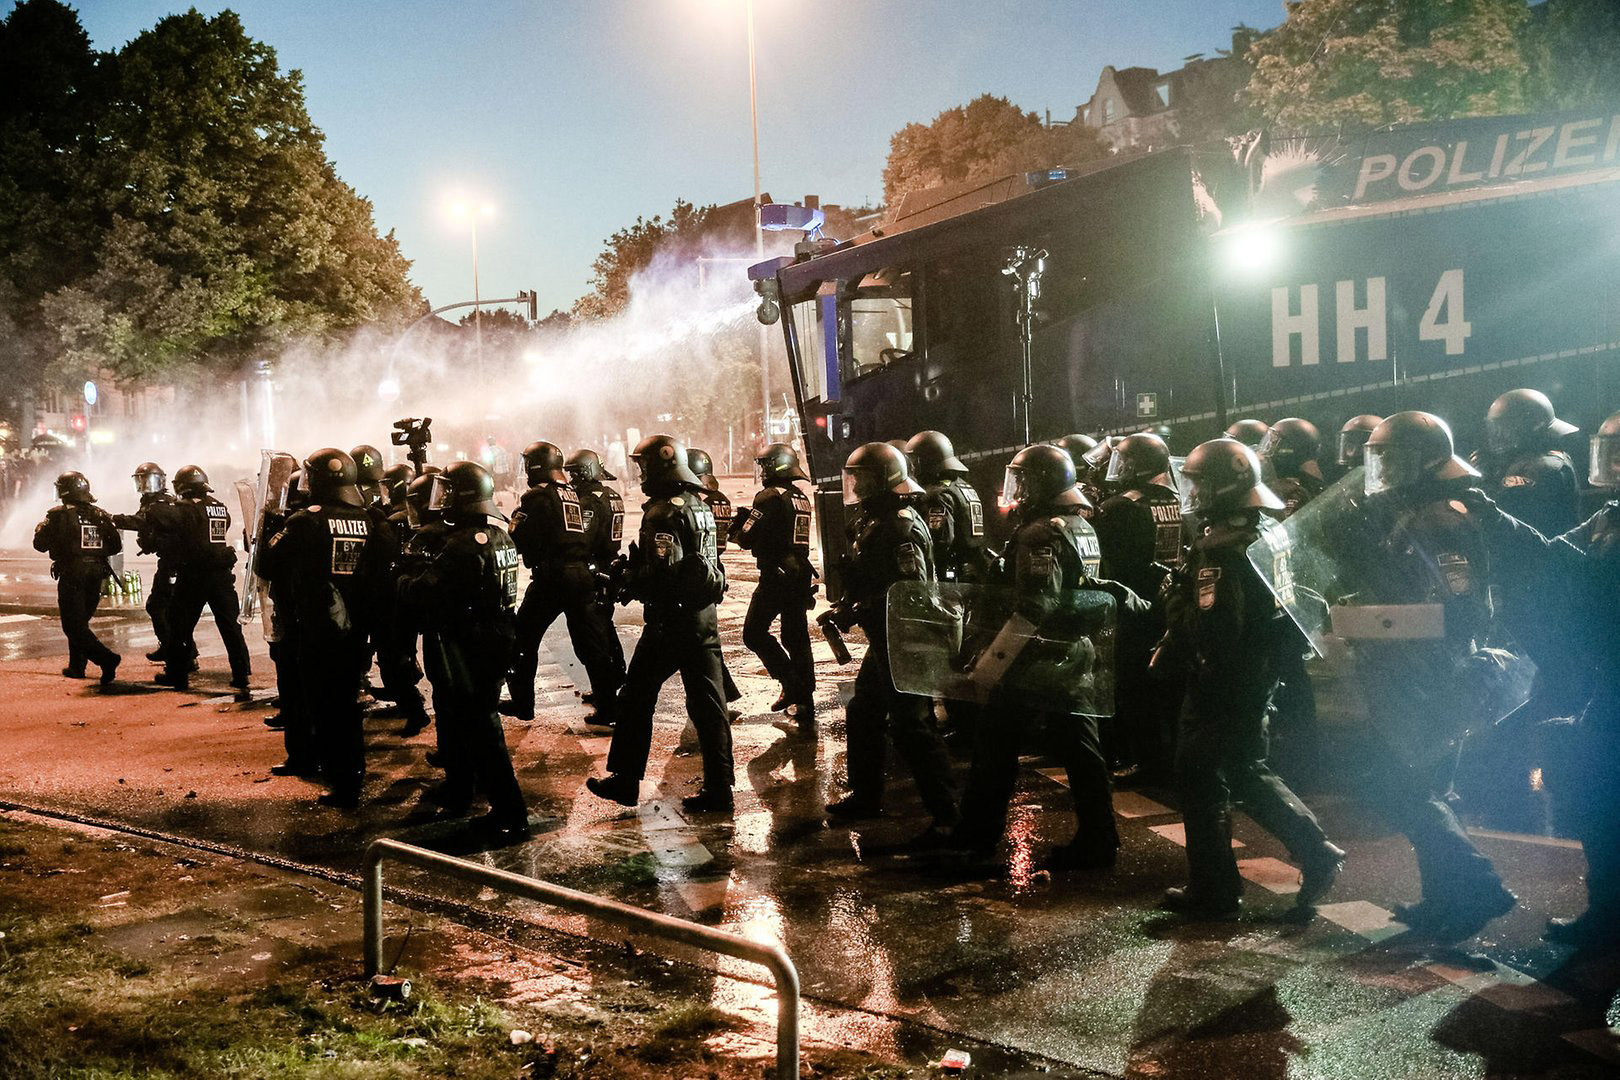 Riot police brutalizing the population of Hamburg during the 2017 G20 summit.